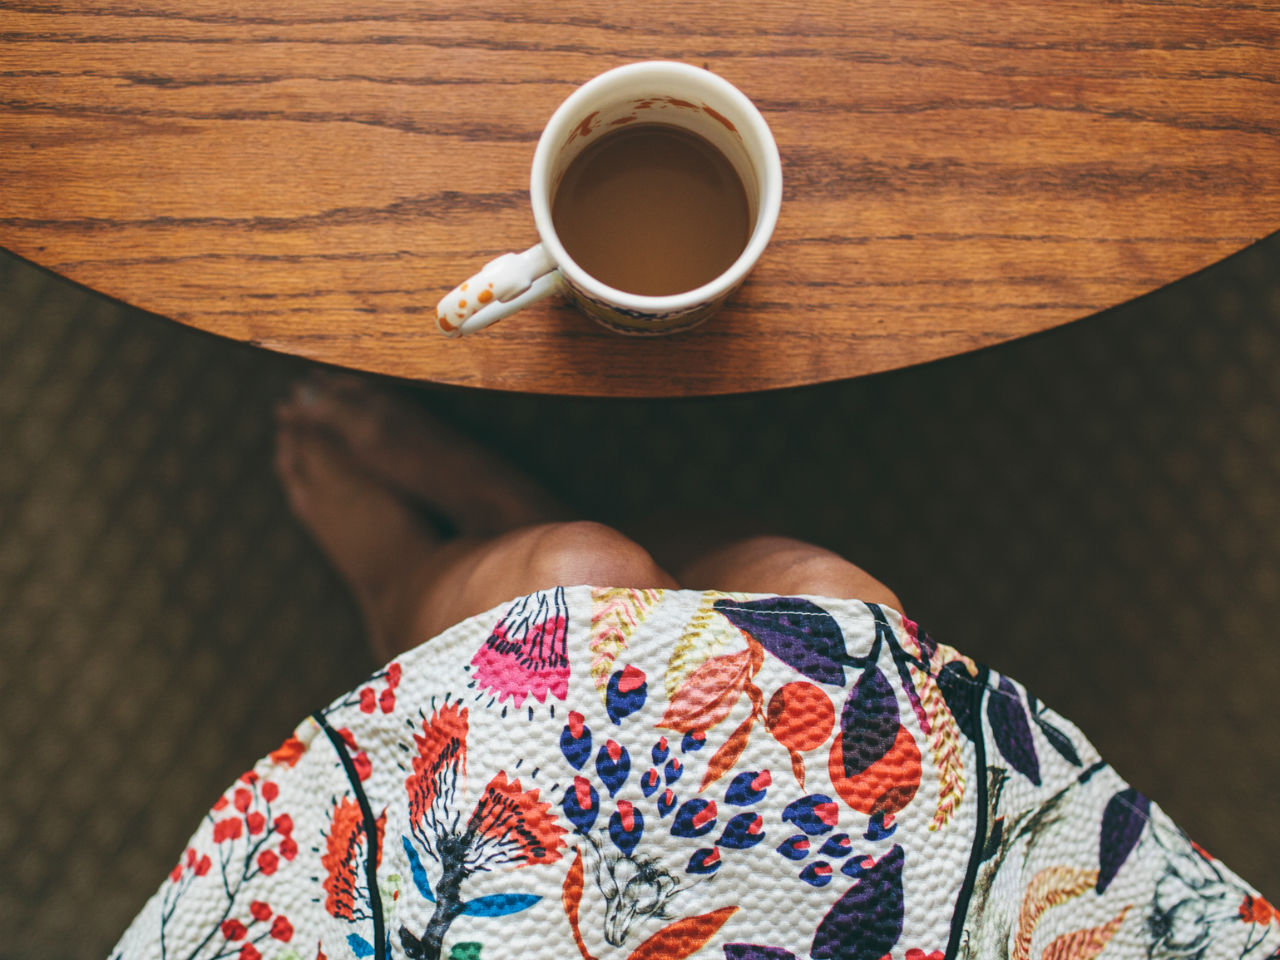 A woman sitting at a table with a cup of coffee in front of her